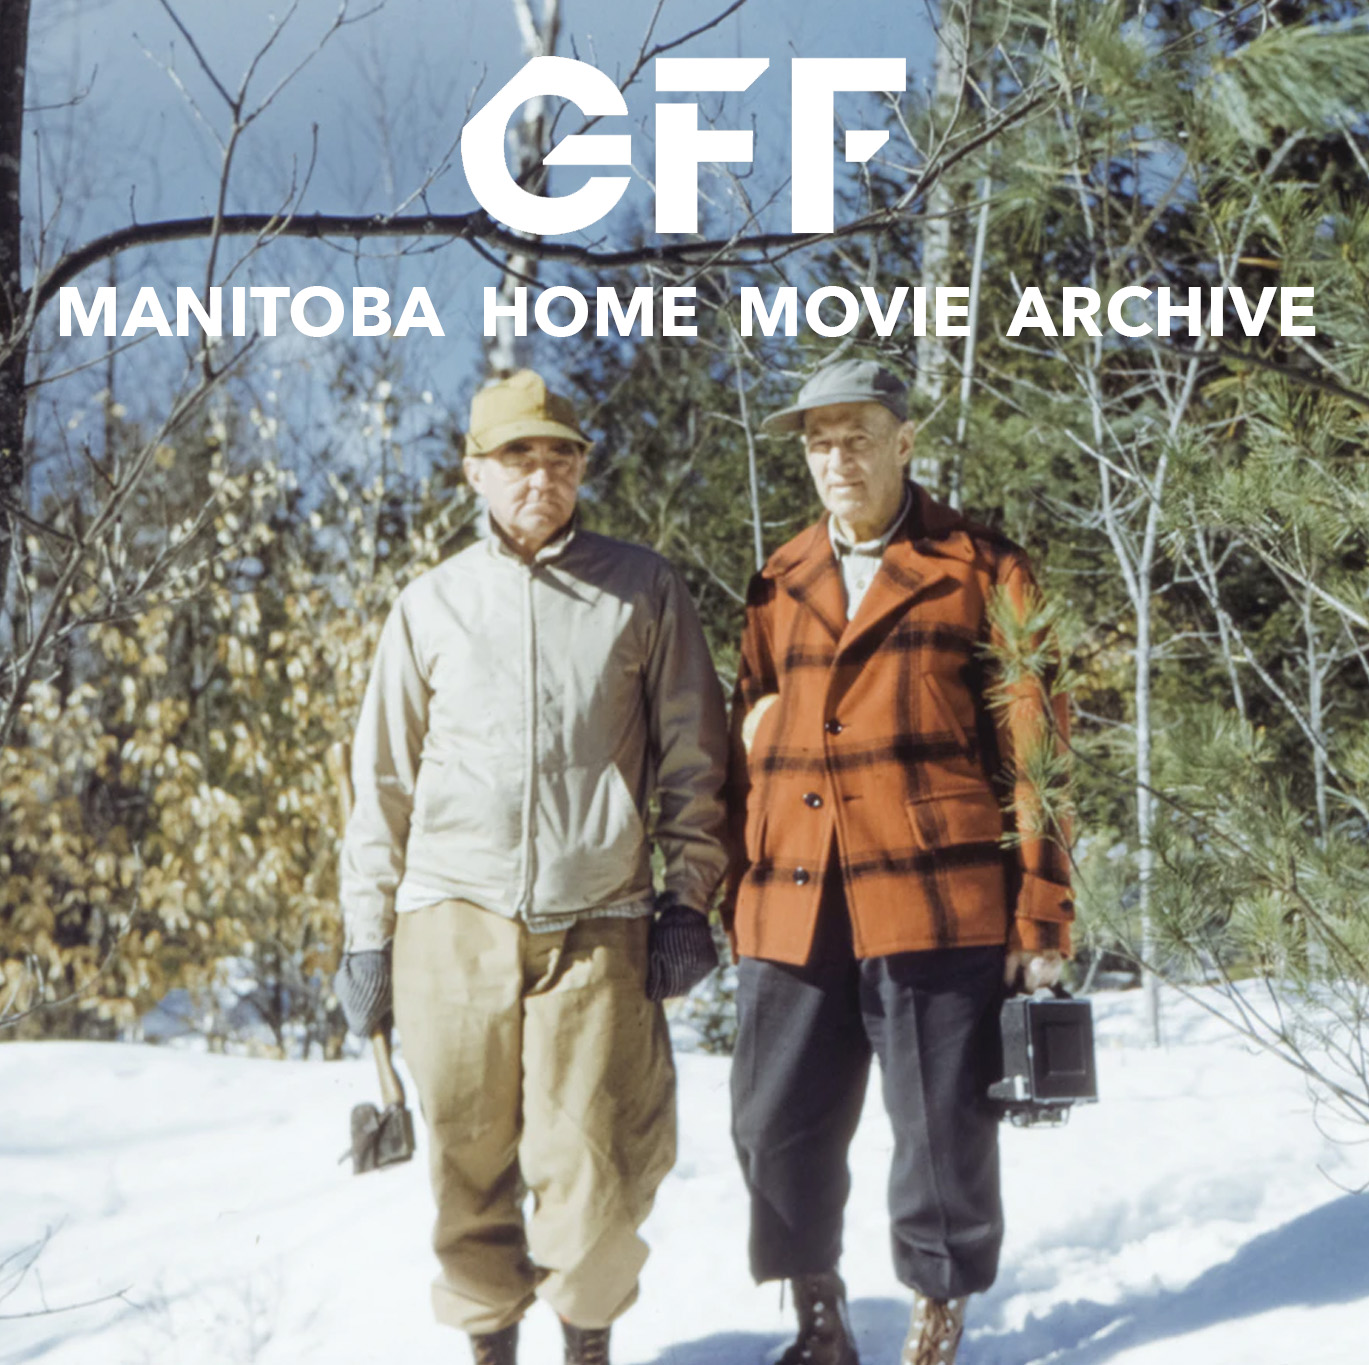 Gimli Film Festival's Manitoba Home Movie Archive